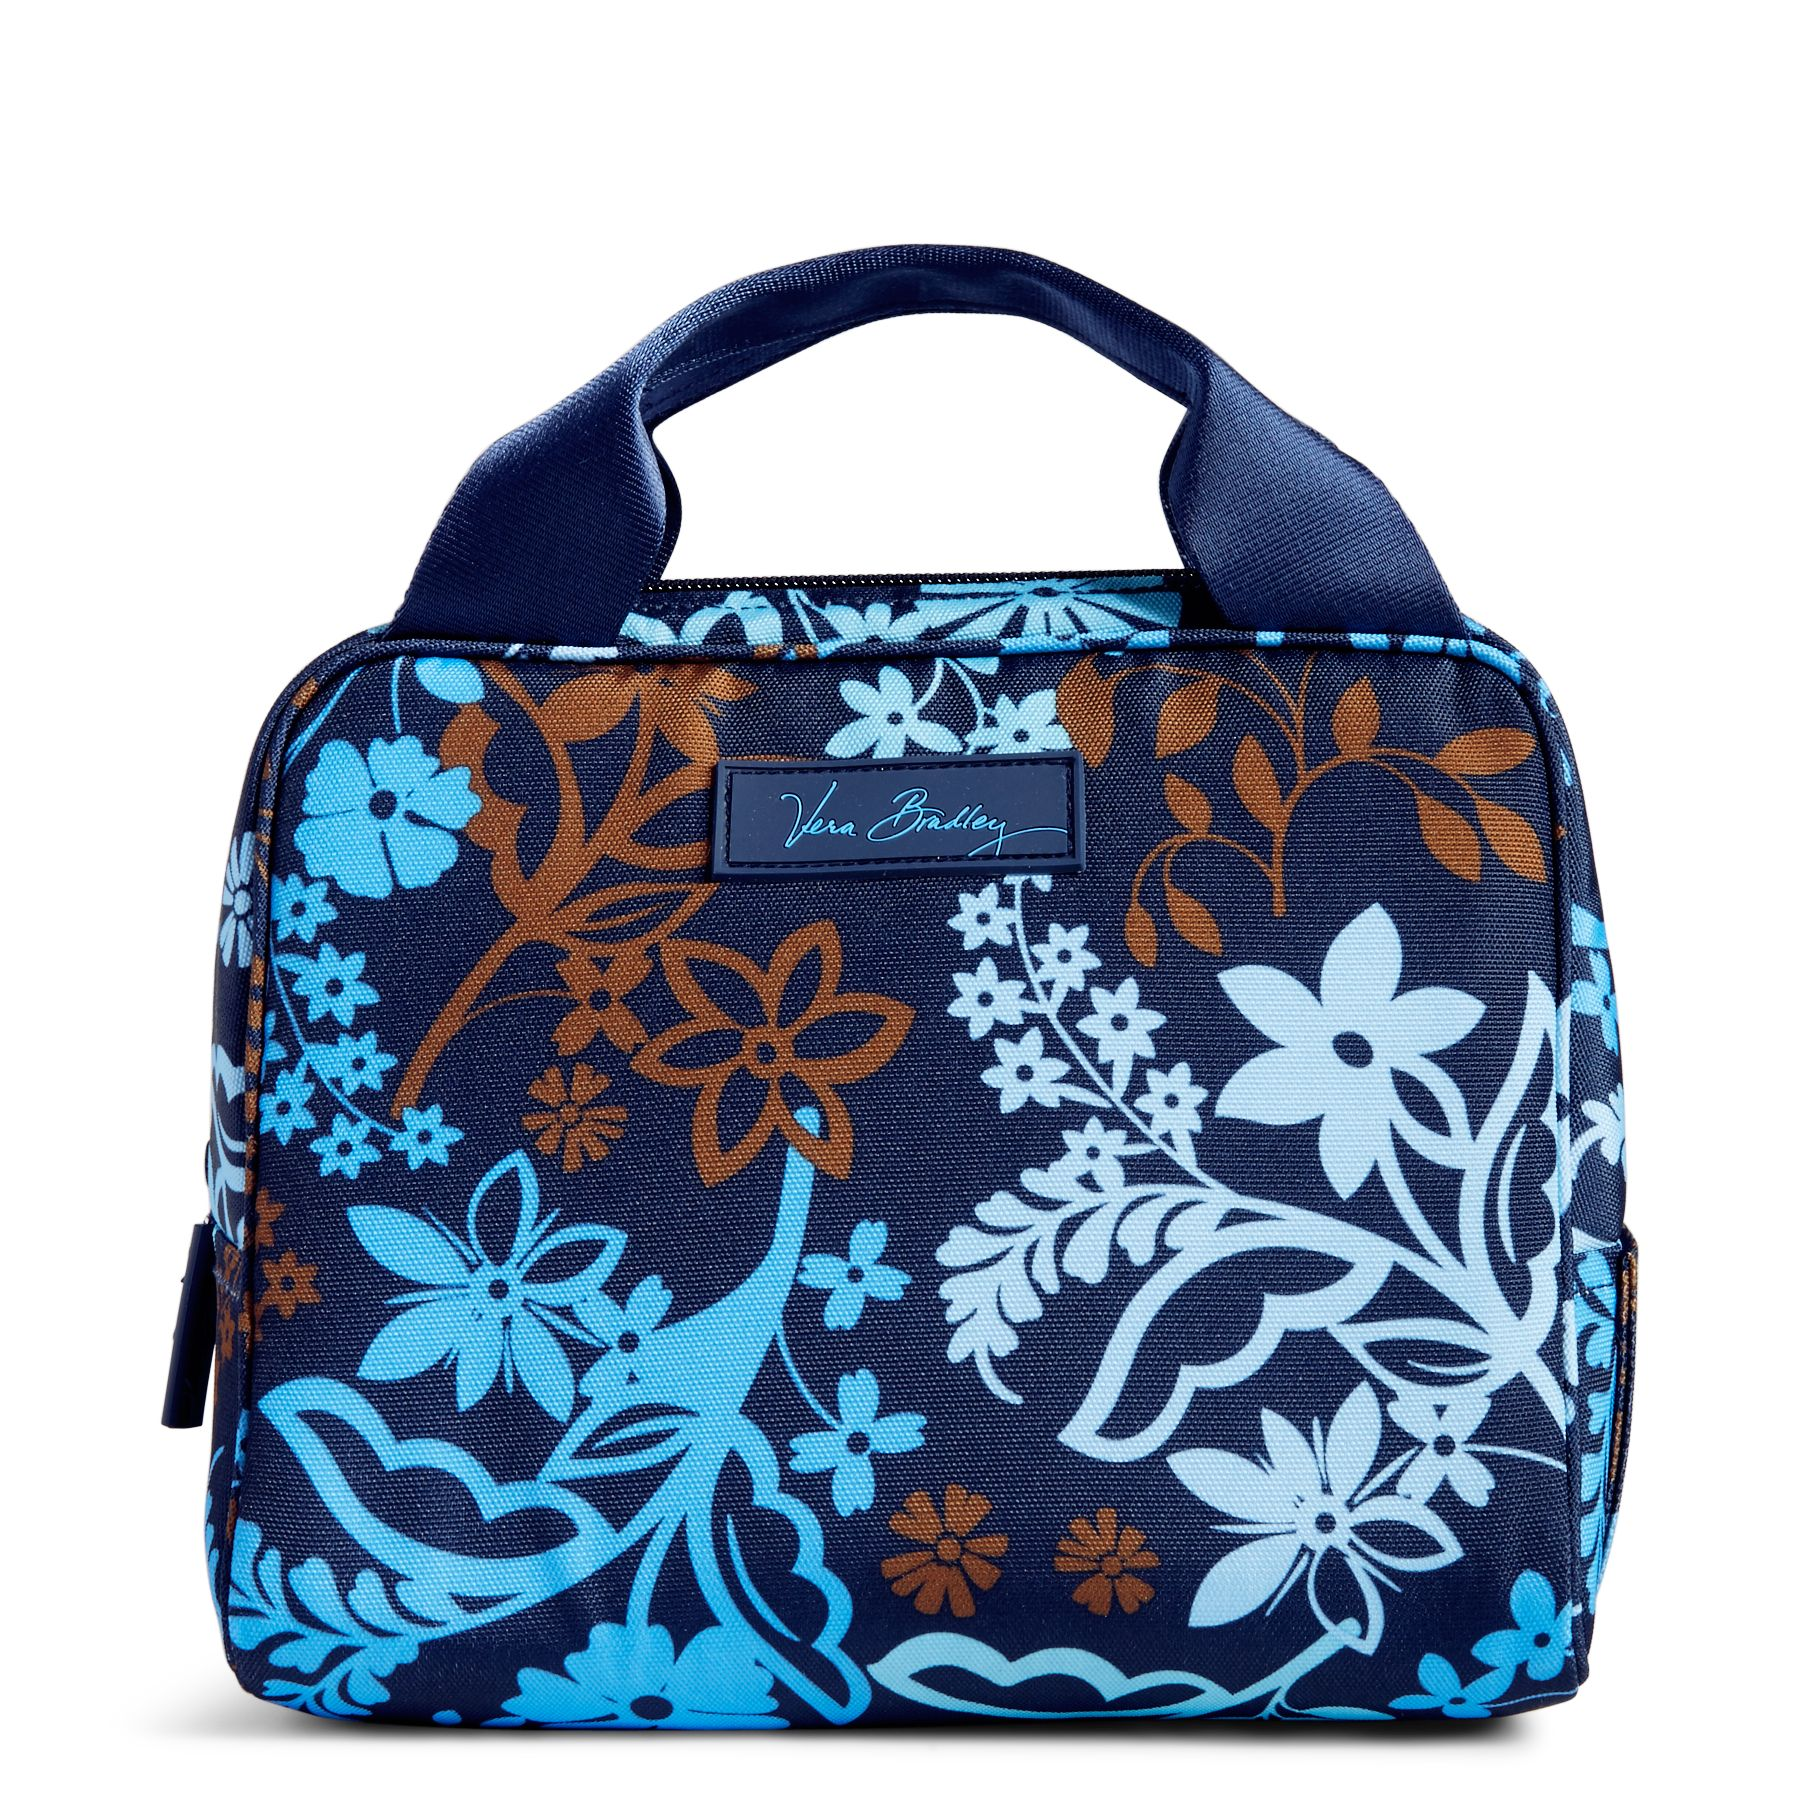 cc777e1d94 UPC 886003380963 product image for Vera Bradley Lighten Up Lunch Cooler in  Java Floral